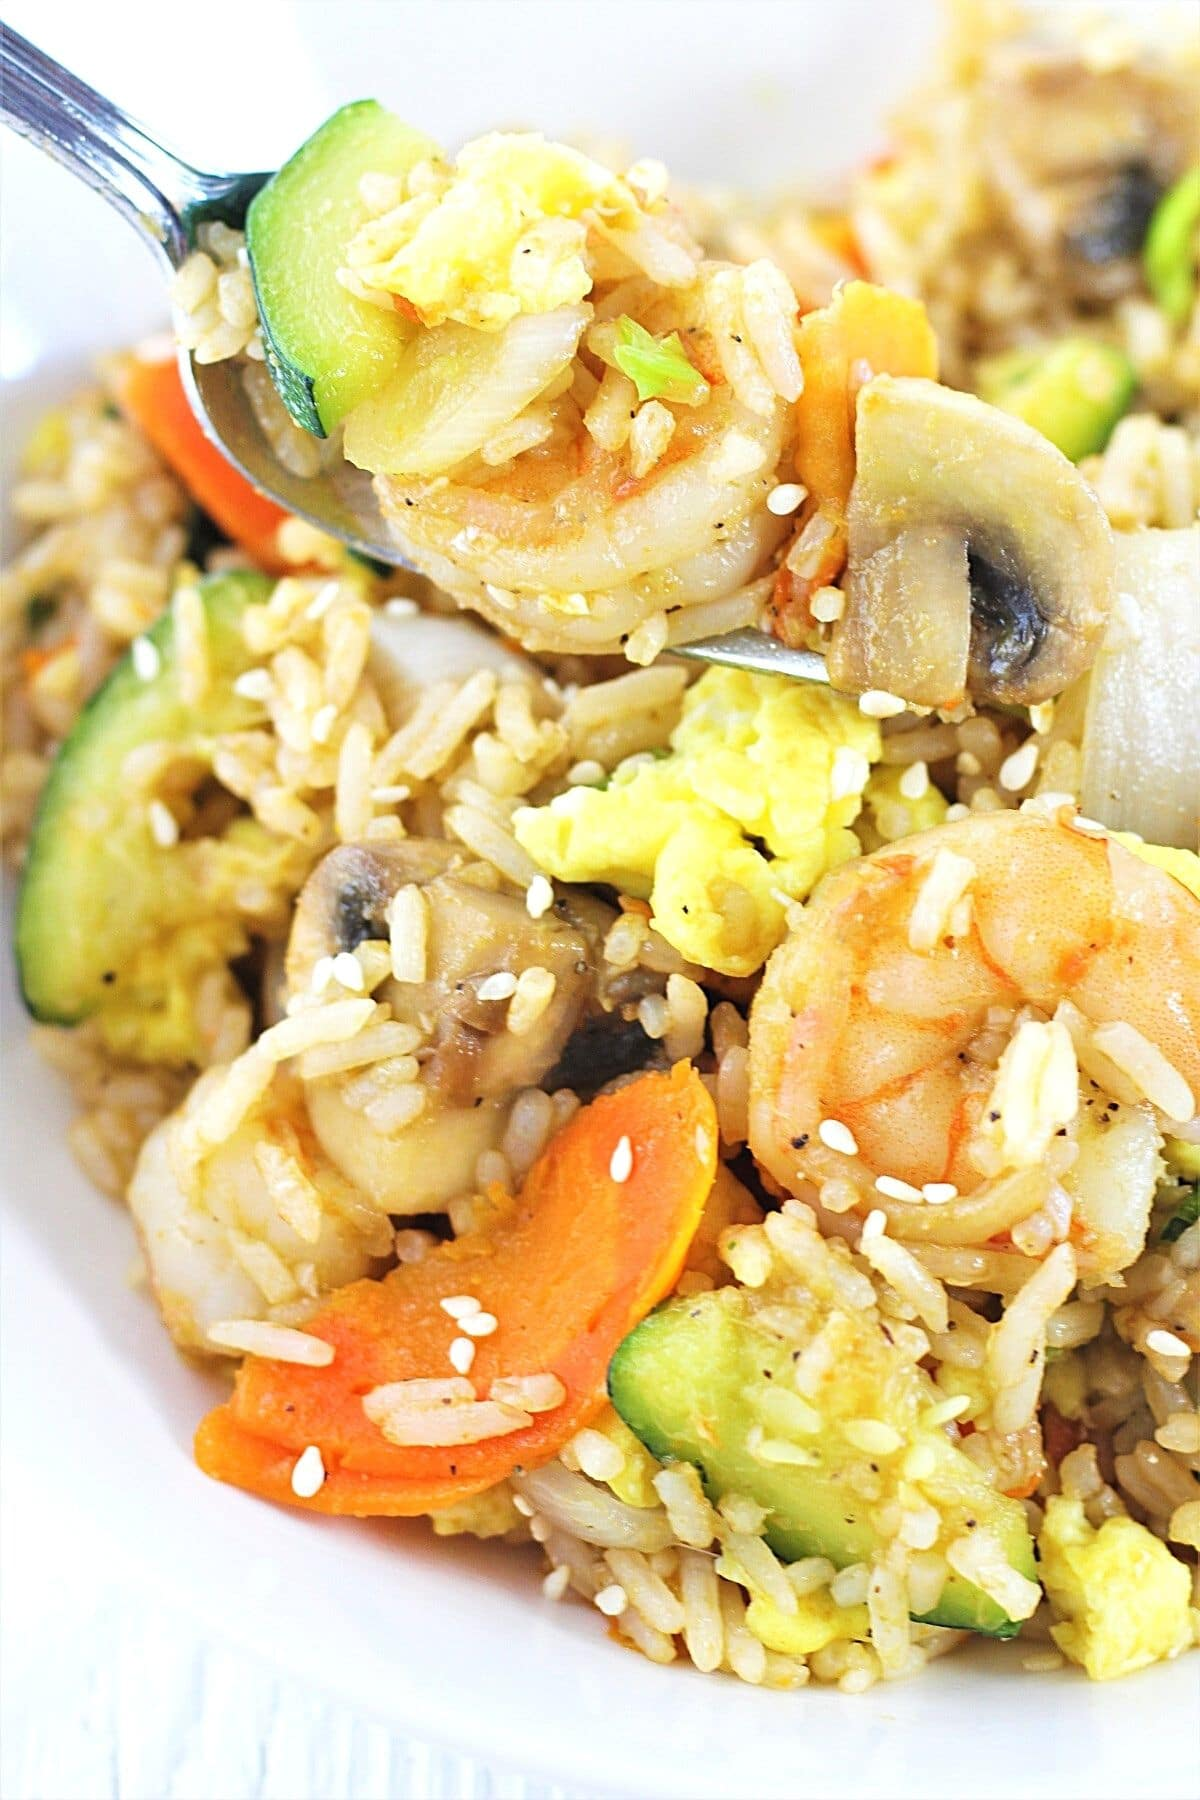 forkful of shrimp fried rice with zucchini and vegetables being taken out of the bowl